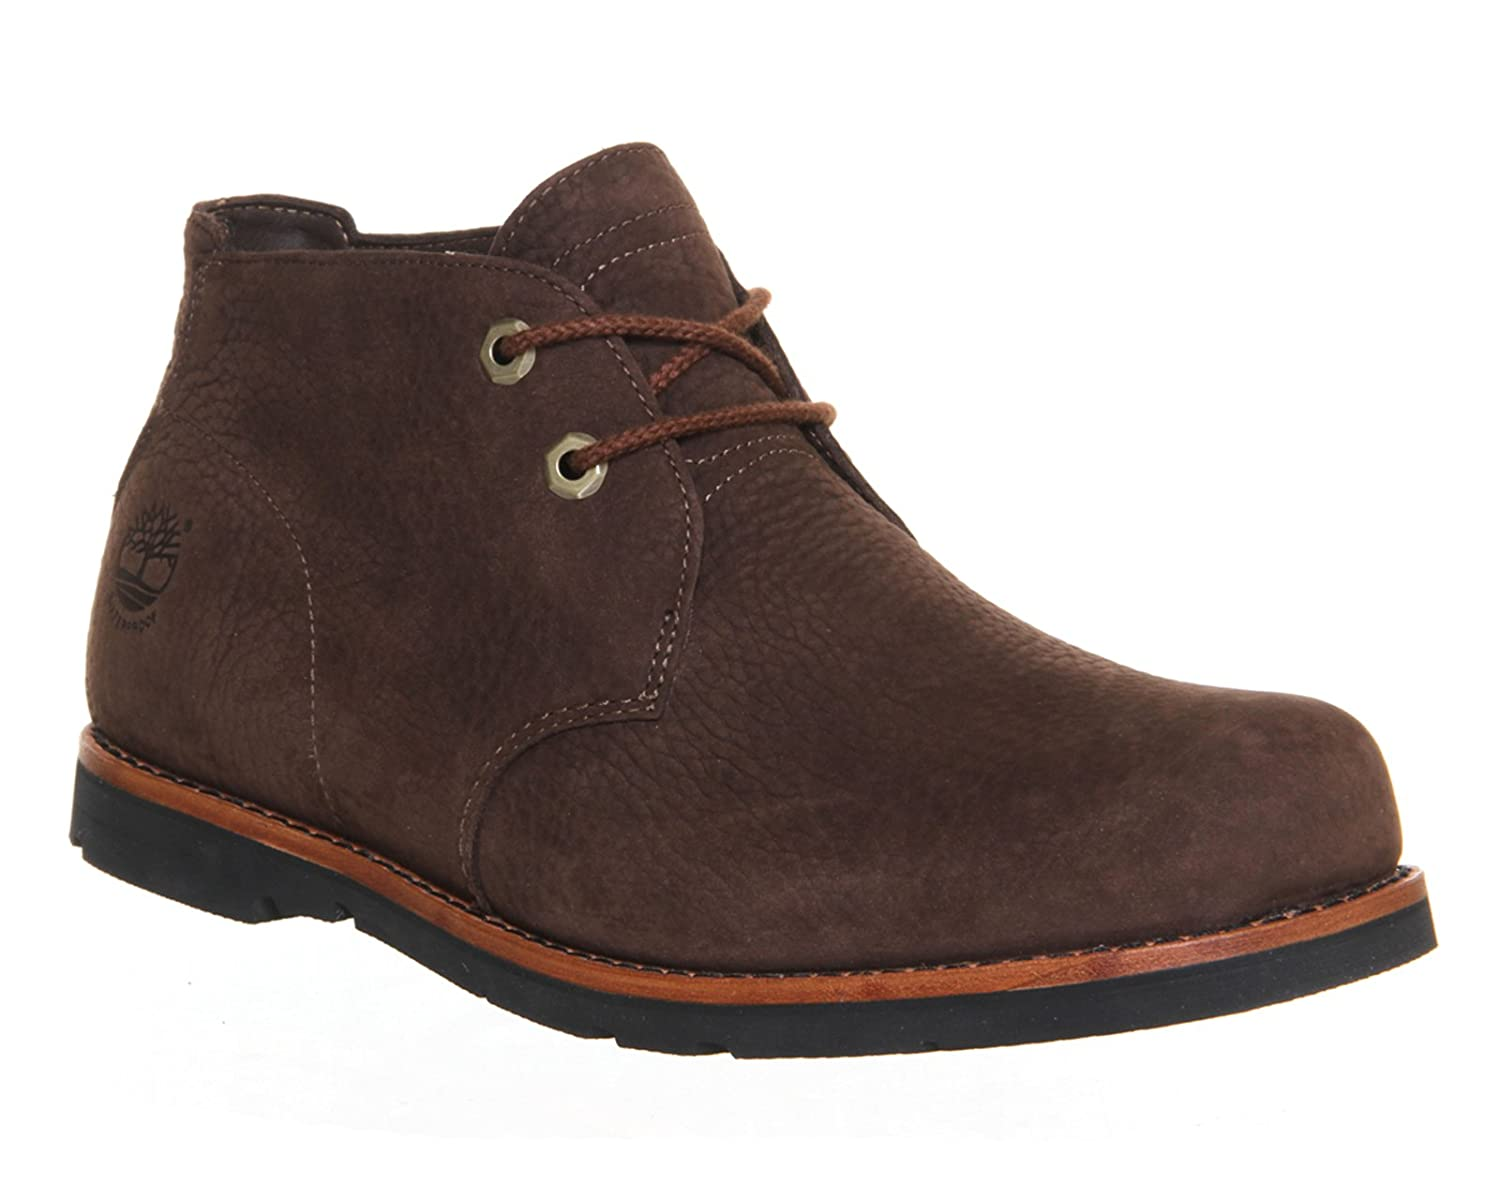 Timberland Earthkeepers Rugged LT Plain Toe Chukka Lace up